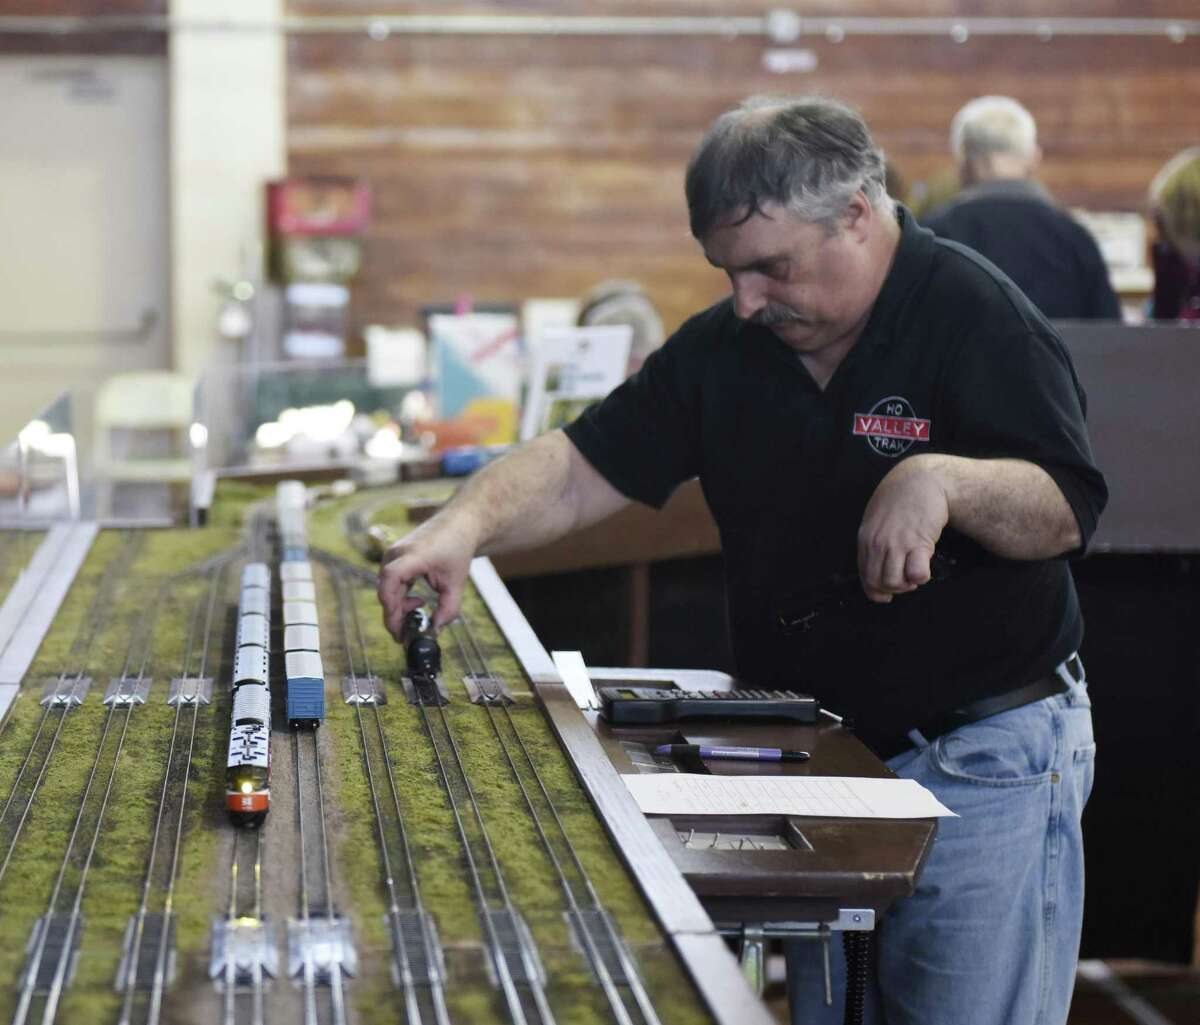 Paul Hrebik, of Valley HO Track, puts a train on the tracks during the Southern CT Model Train Show at the Eastern Greenwich Civic Center in Old Greenwich, Conn. Sunday, March 11, 2018. The town is looking to build a new civic center building.